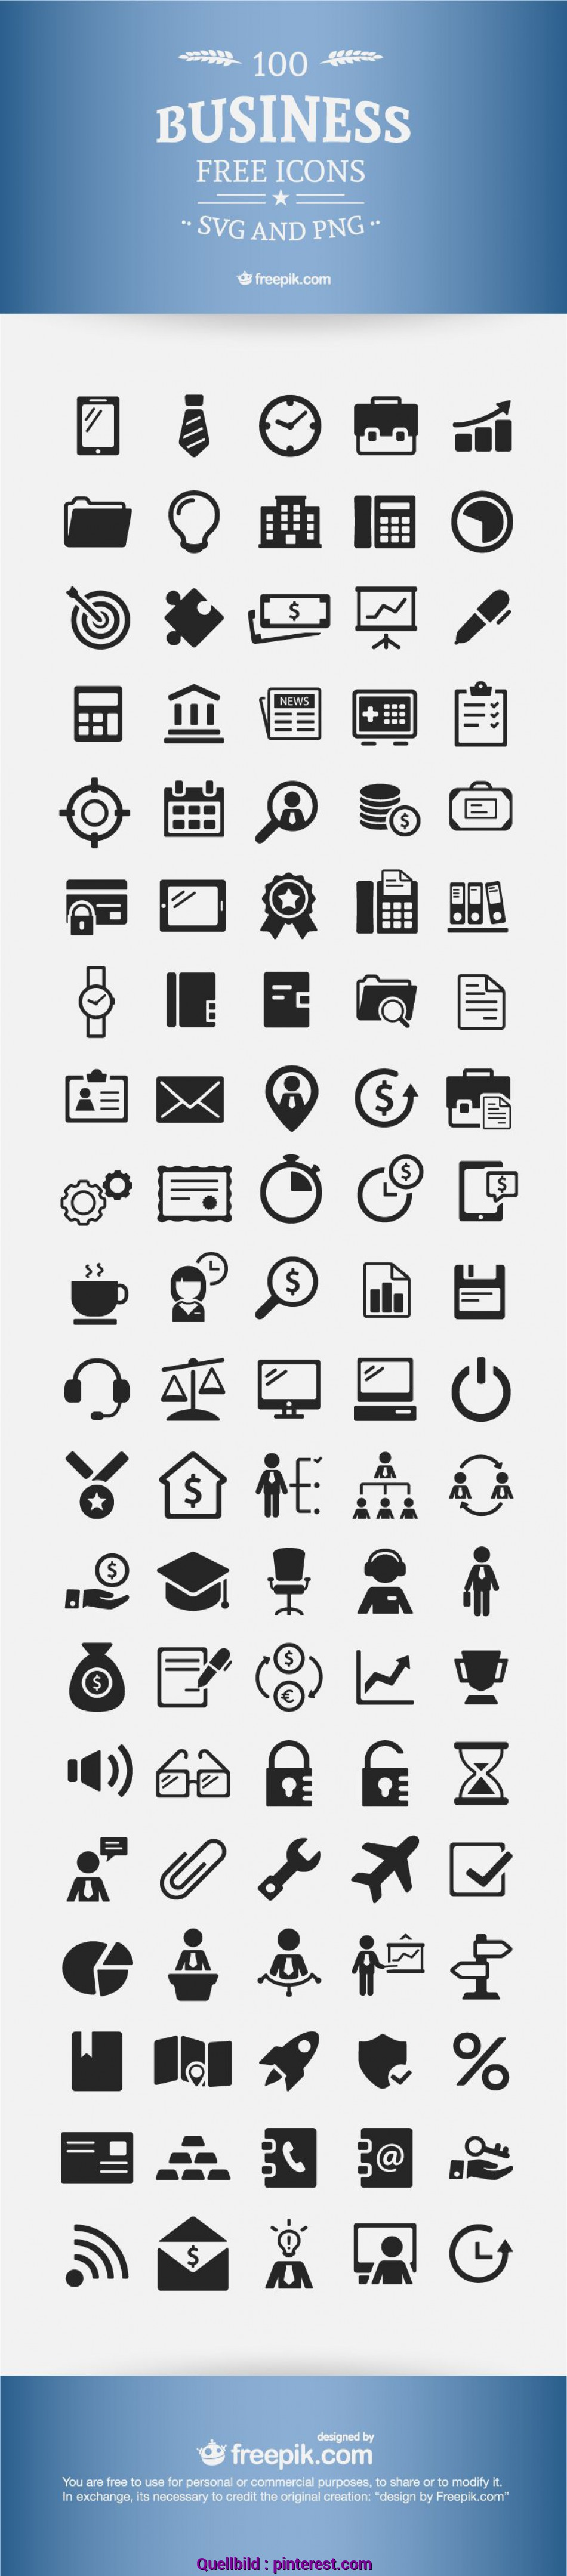 Liebling Download] Free Business Icons, 100% Vectors, Free Stuff